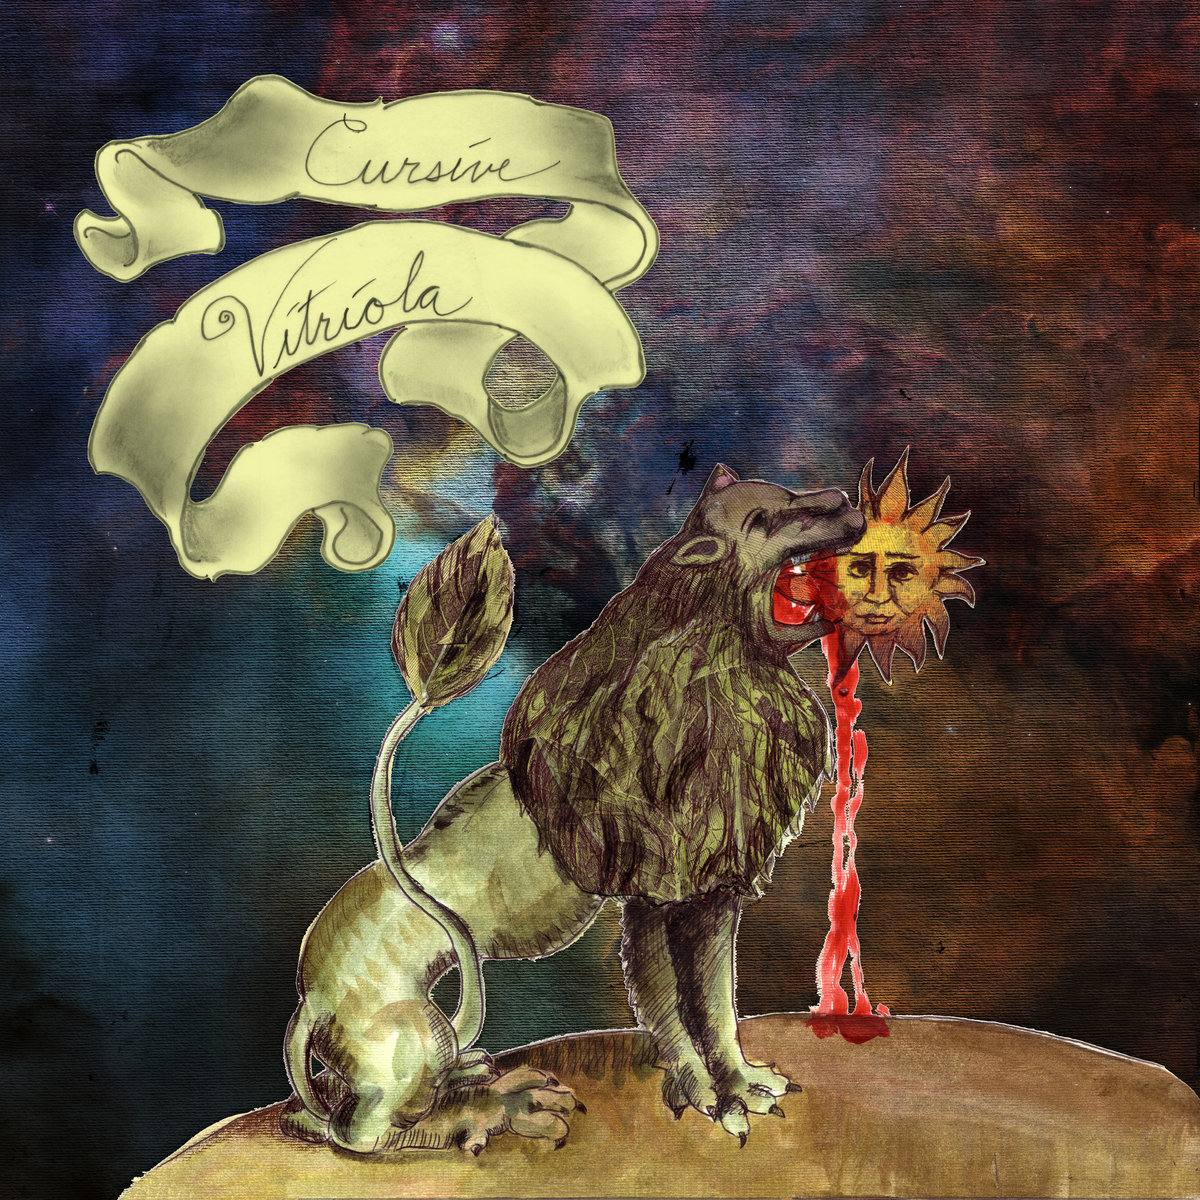 Cursive Vitriola Review For Northern Transmissions